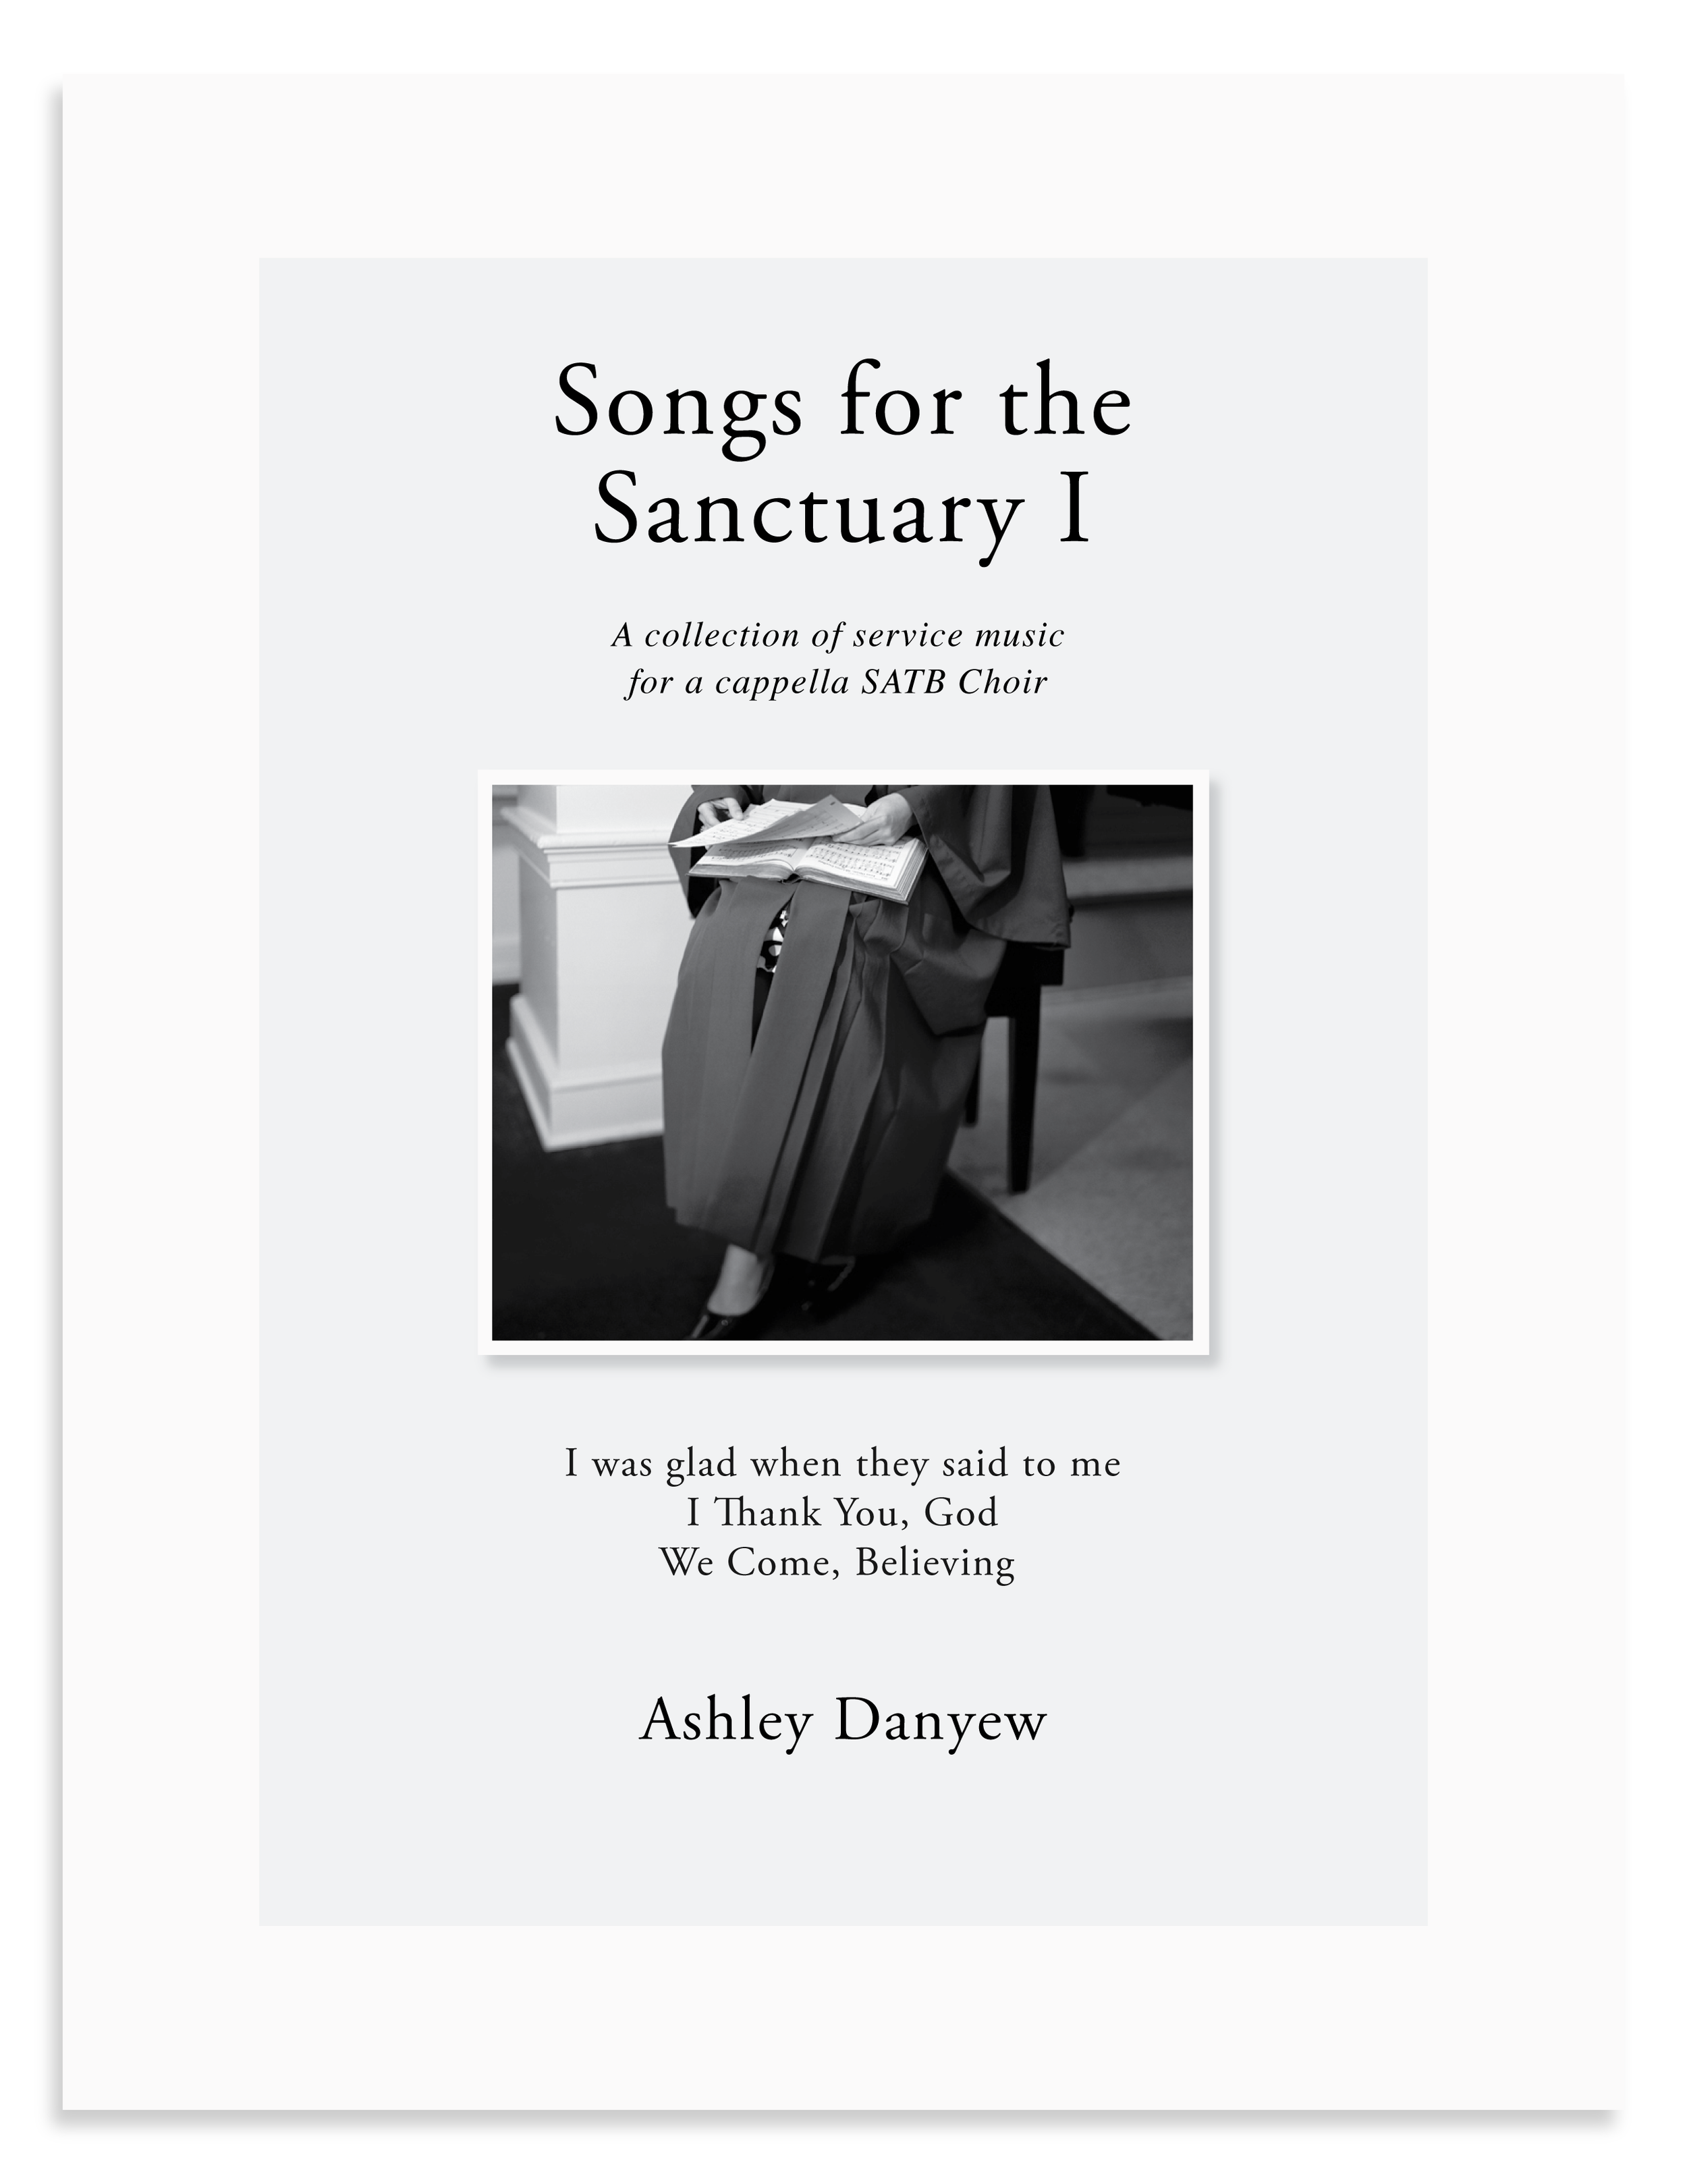 Songs for the Sanctuary I by Ashley Danyew.png